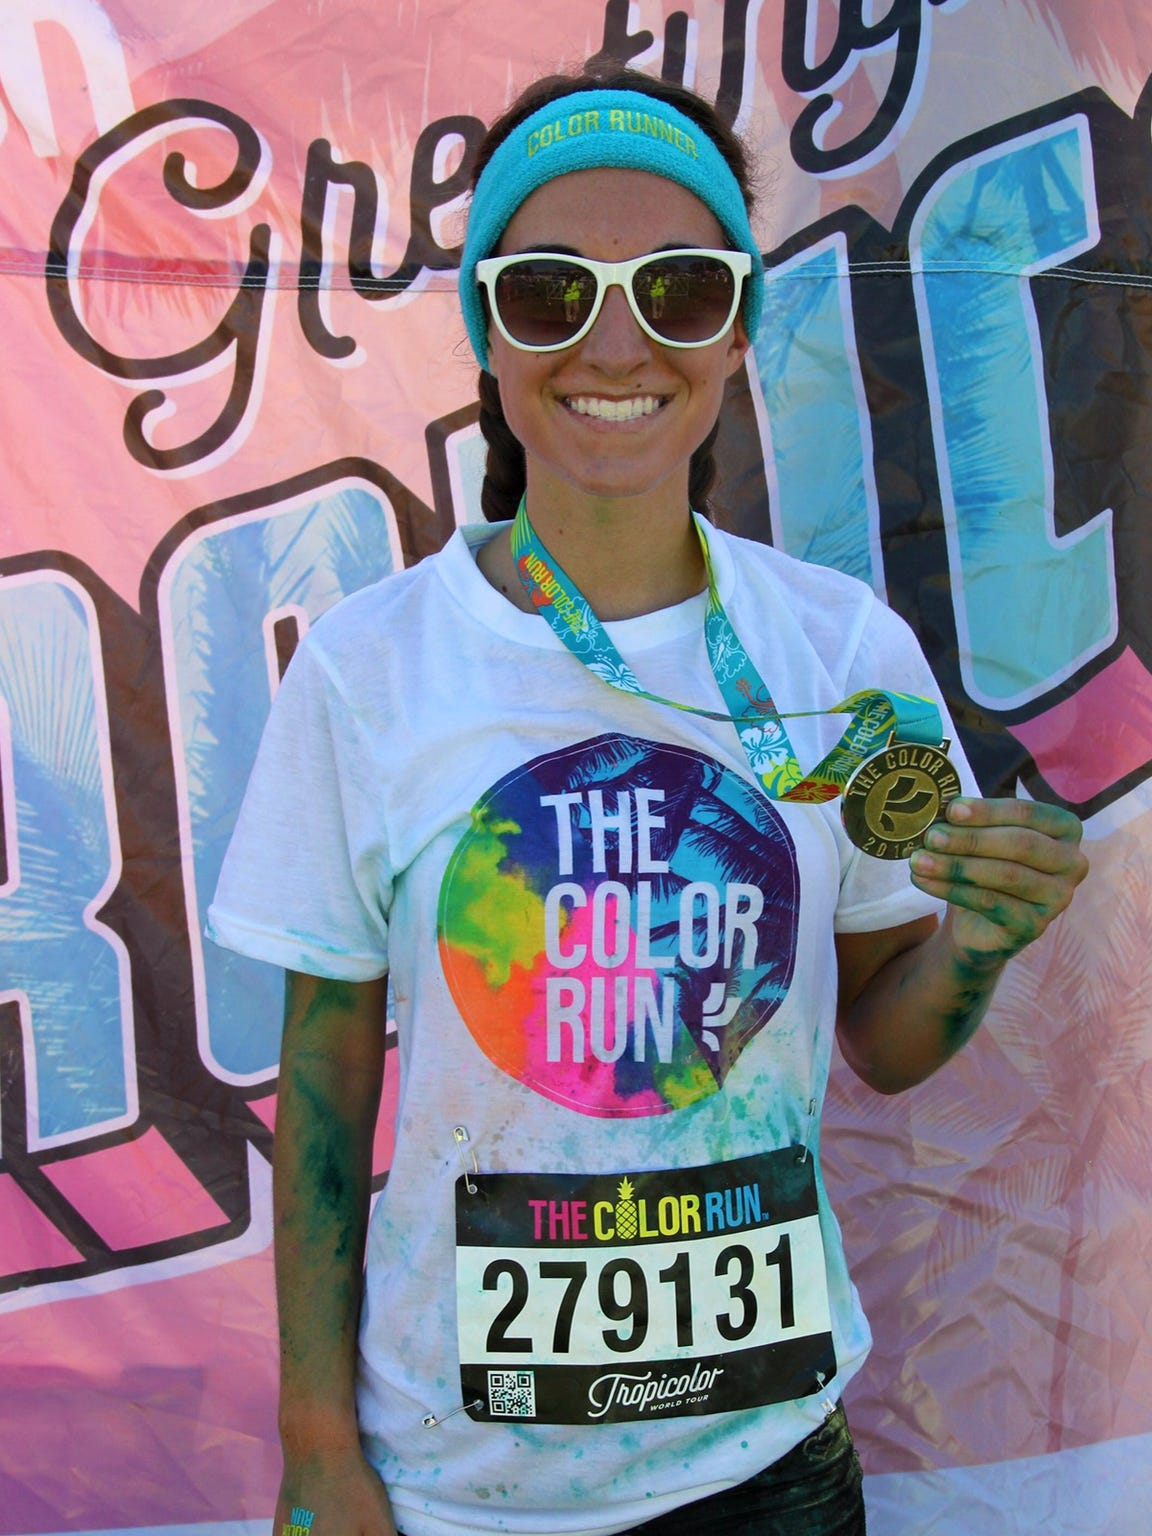 Abby shows off her Color Run gear after competing in